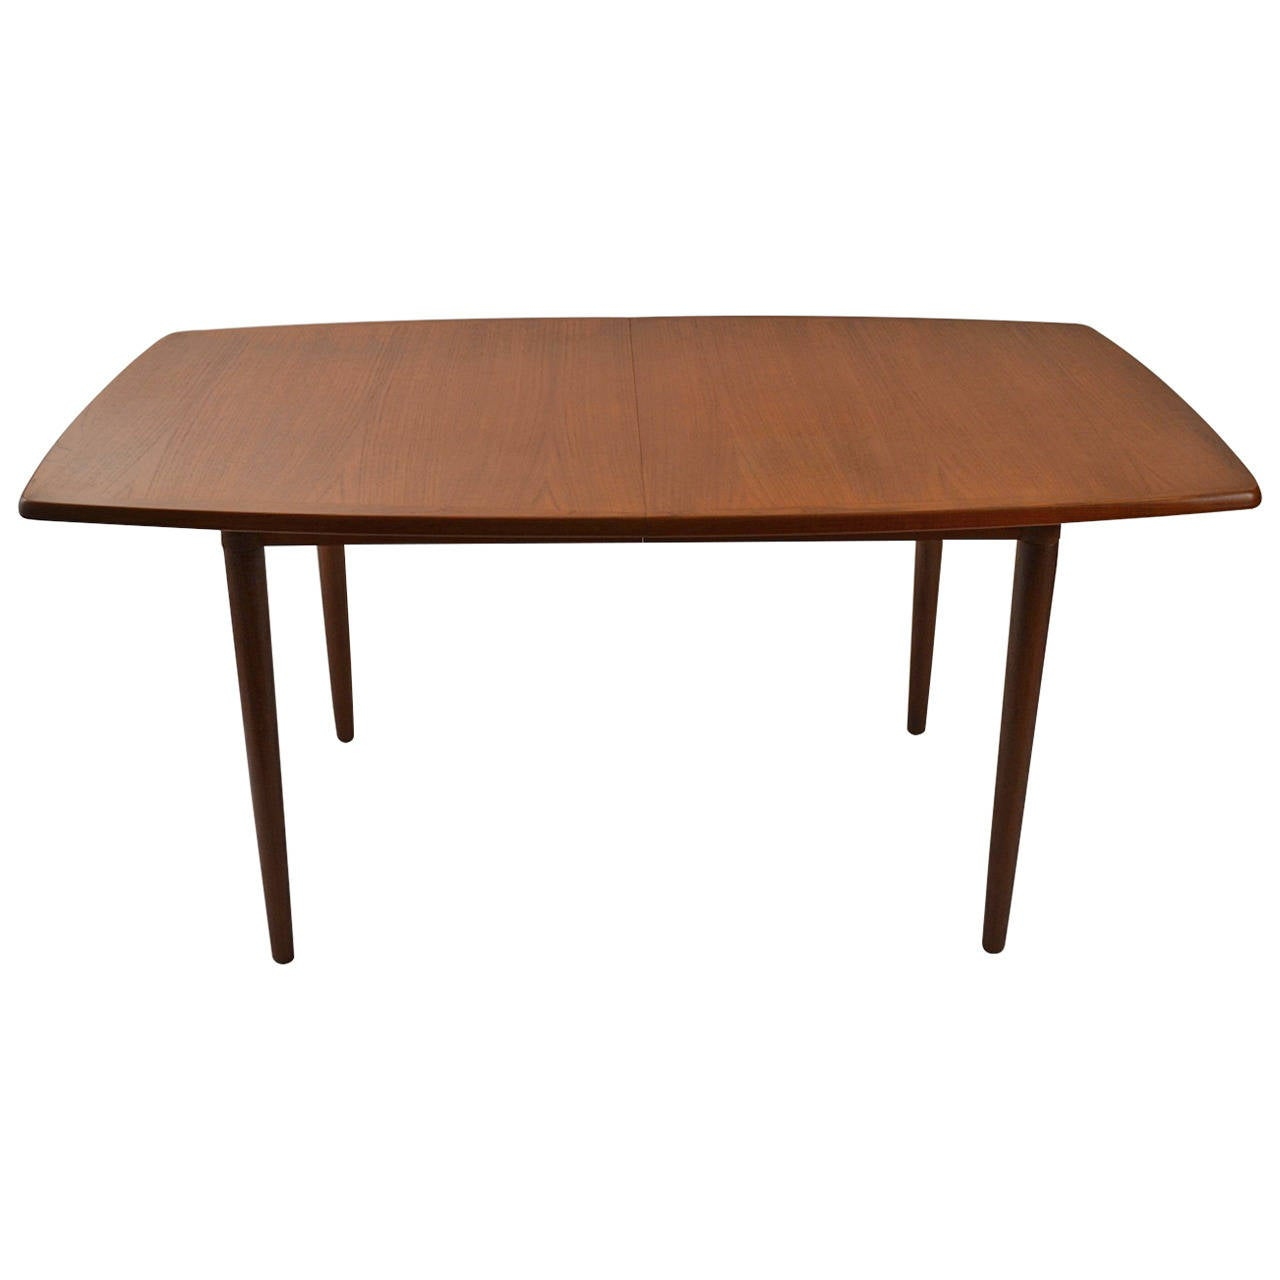 Danish modern teak dining table with two leaves at 1stdibs for Dining table with two leaves